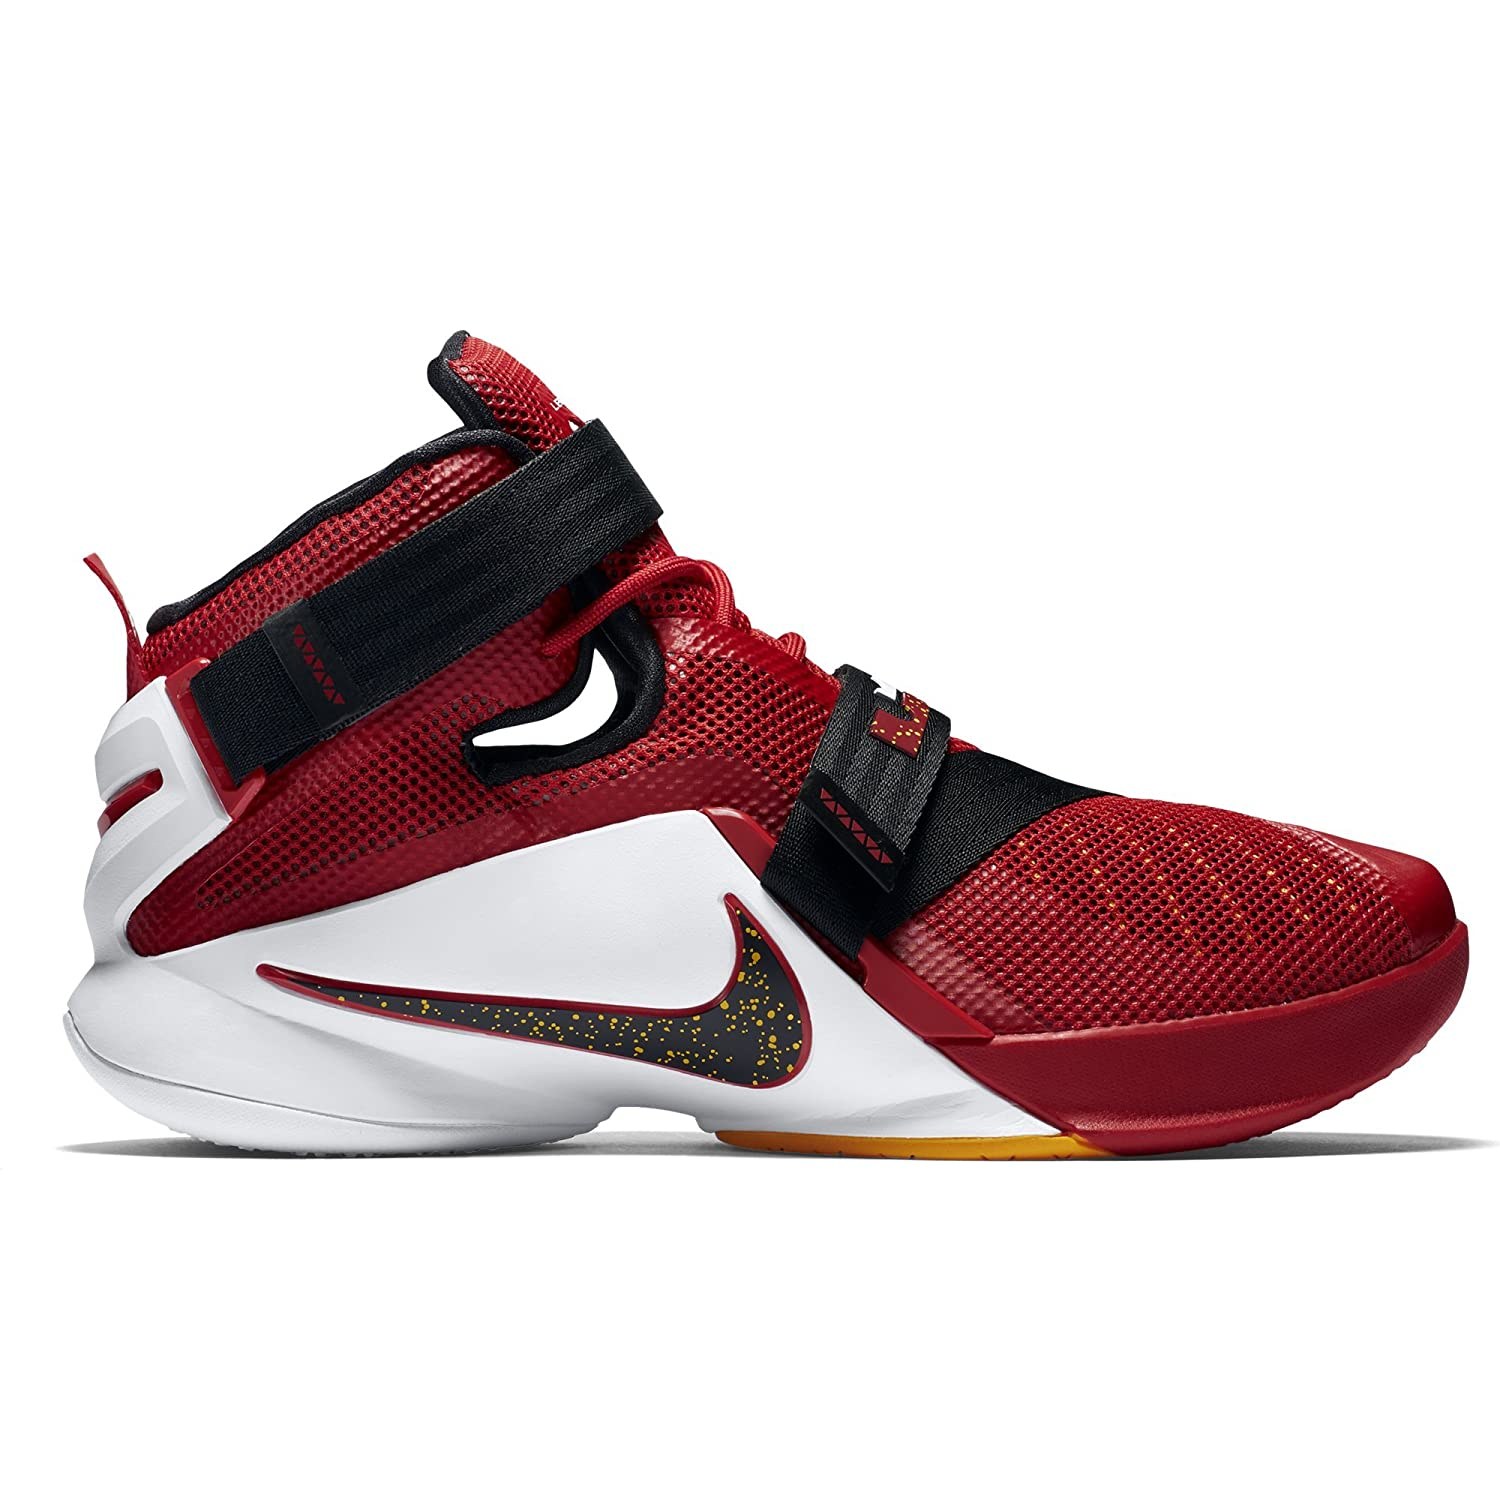 Nike Lebron Soldier Ix, Men's Basketball Shoes: Amazon.co.uk: Shoes & Bags